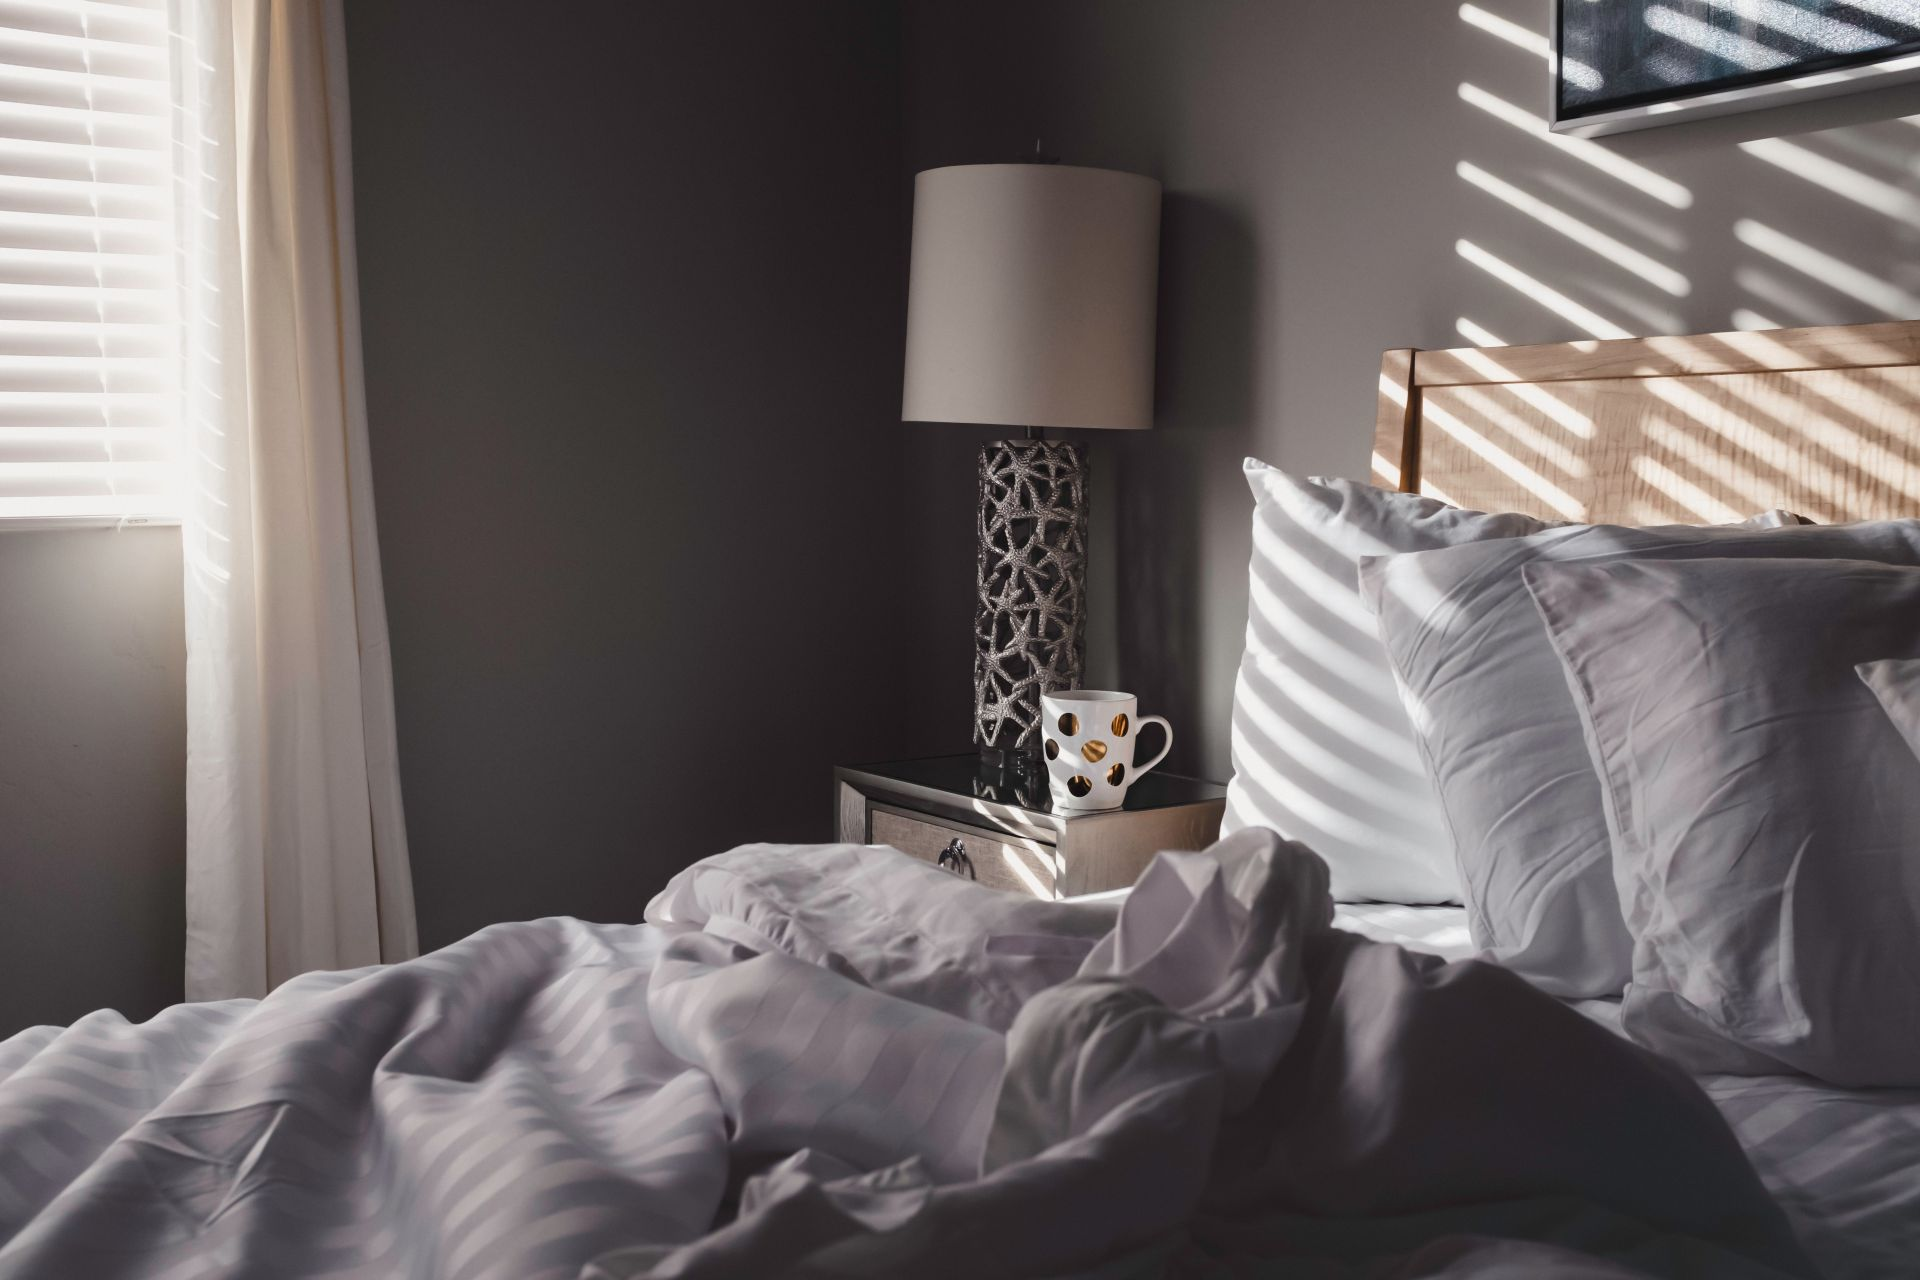 Ikea wants you to try a Swedish sleep trend that could save your relationship